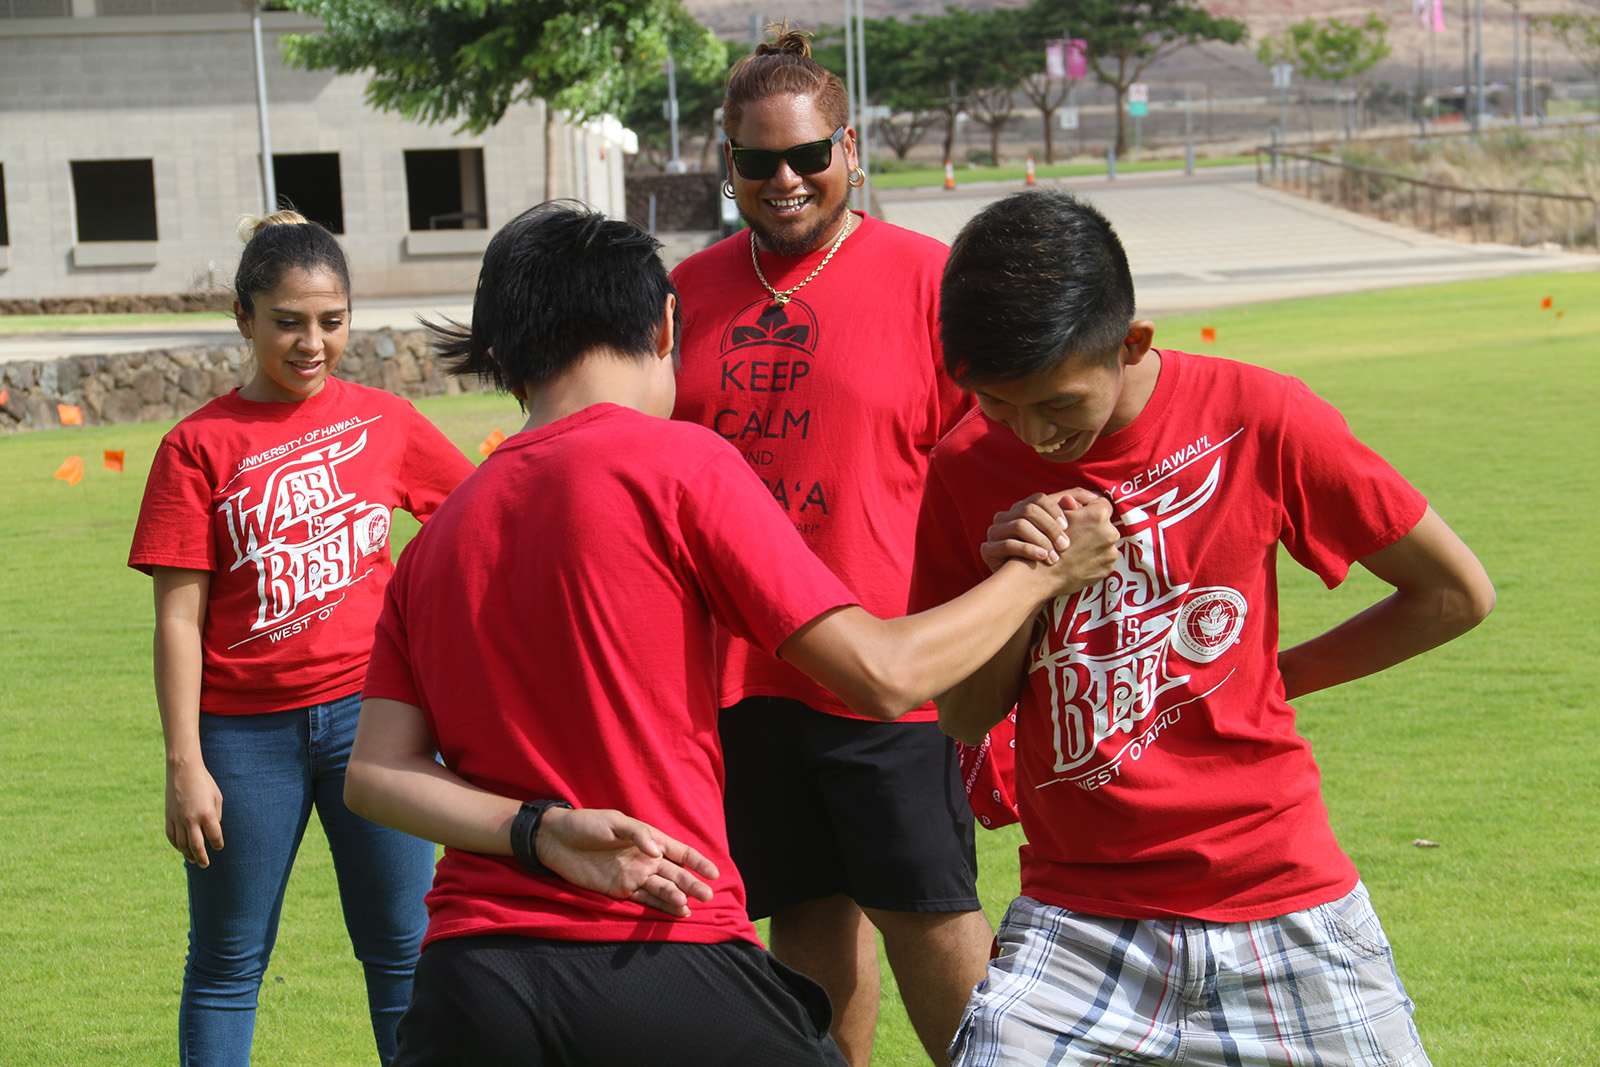 Onipaʻa Summer Bridge students participating in Makahiki games